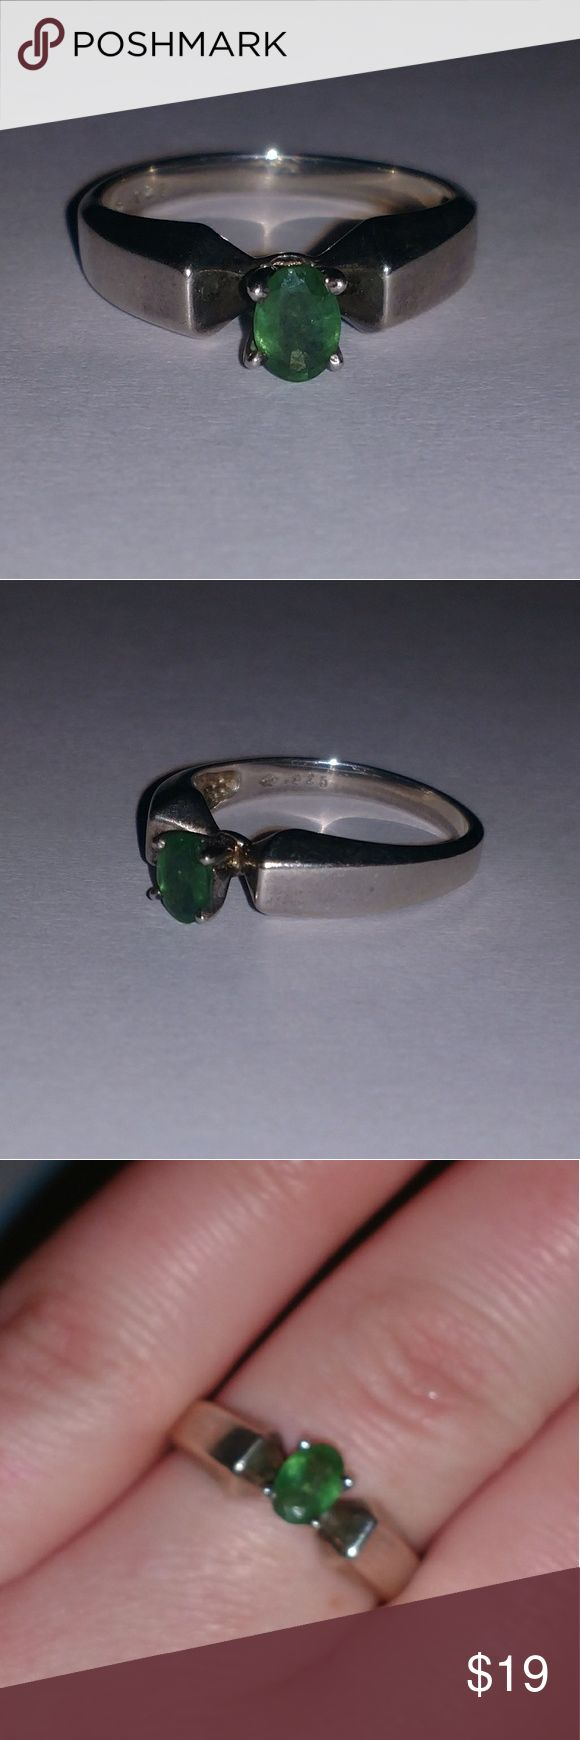 Sterling silver ring with emerald This is a beautiful sterling silver ring with a beautiful emerald stone. it is a size 8.5 Jewelry Rings